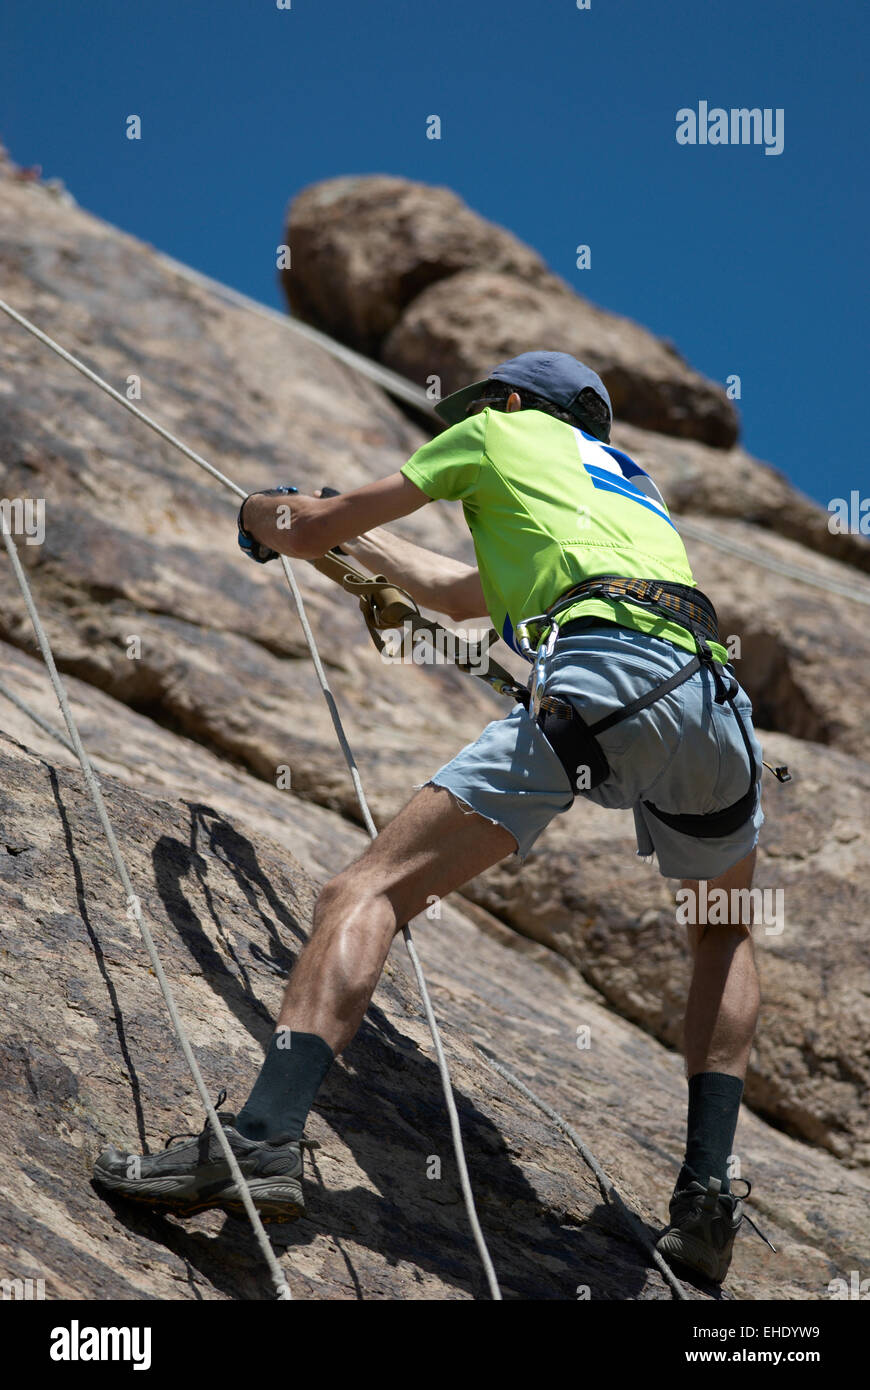 Clamber on cliff - Stock Image